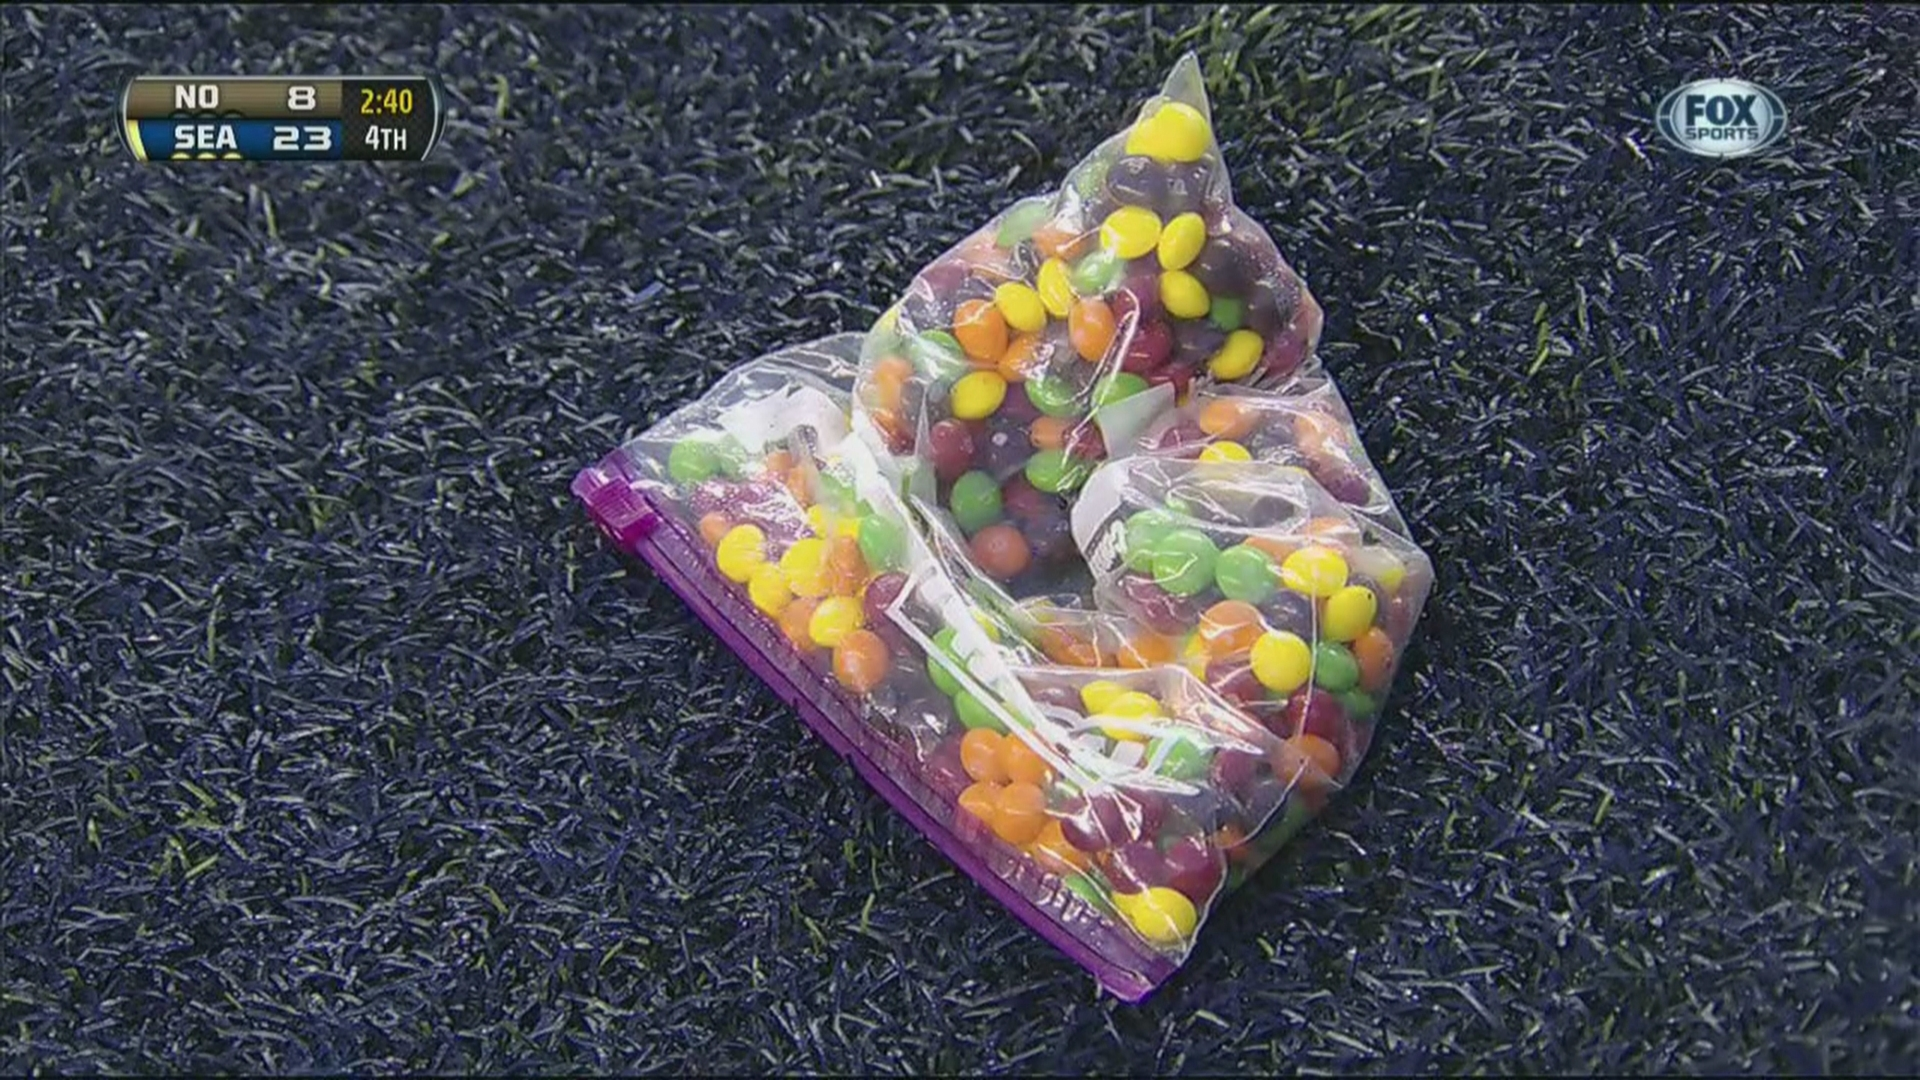 Marshawn Lynch diving into Skittles